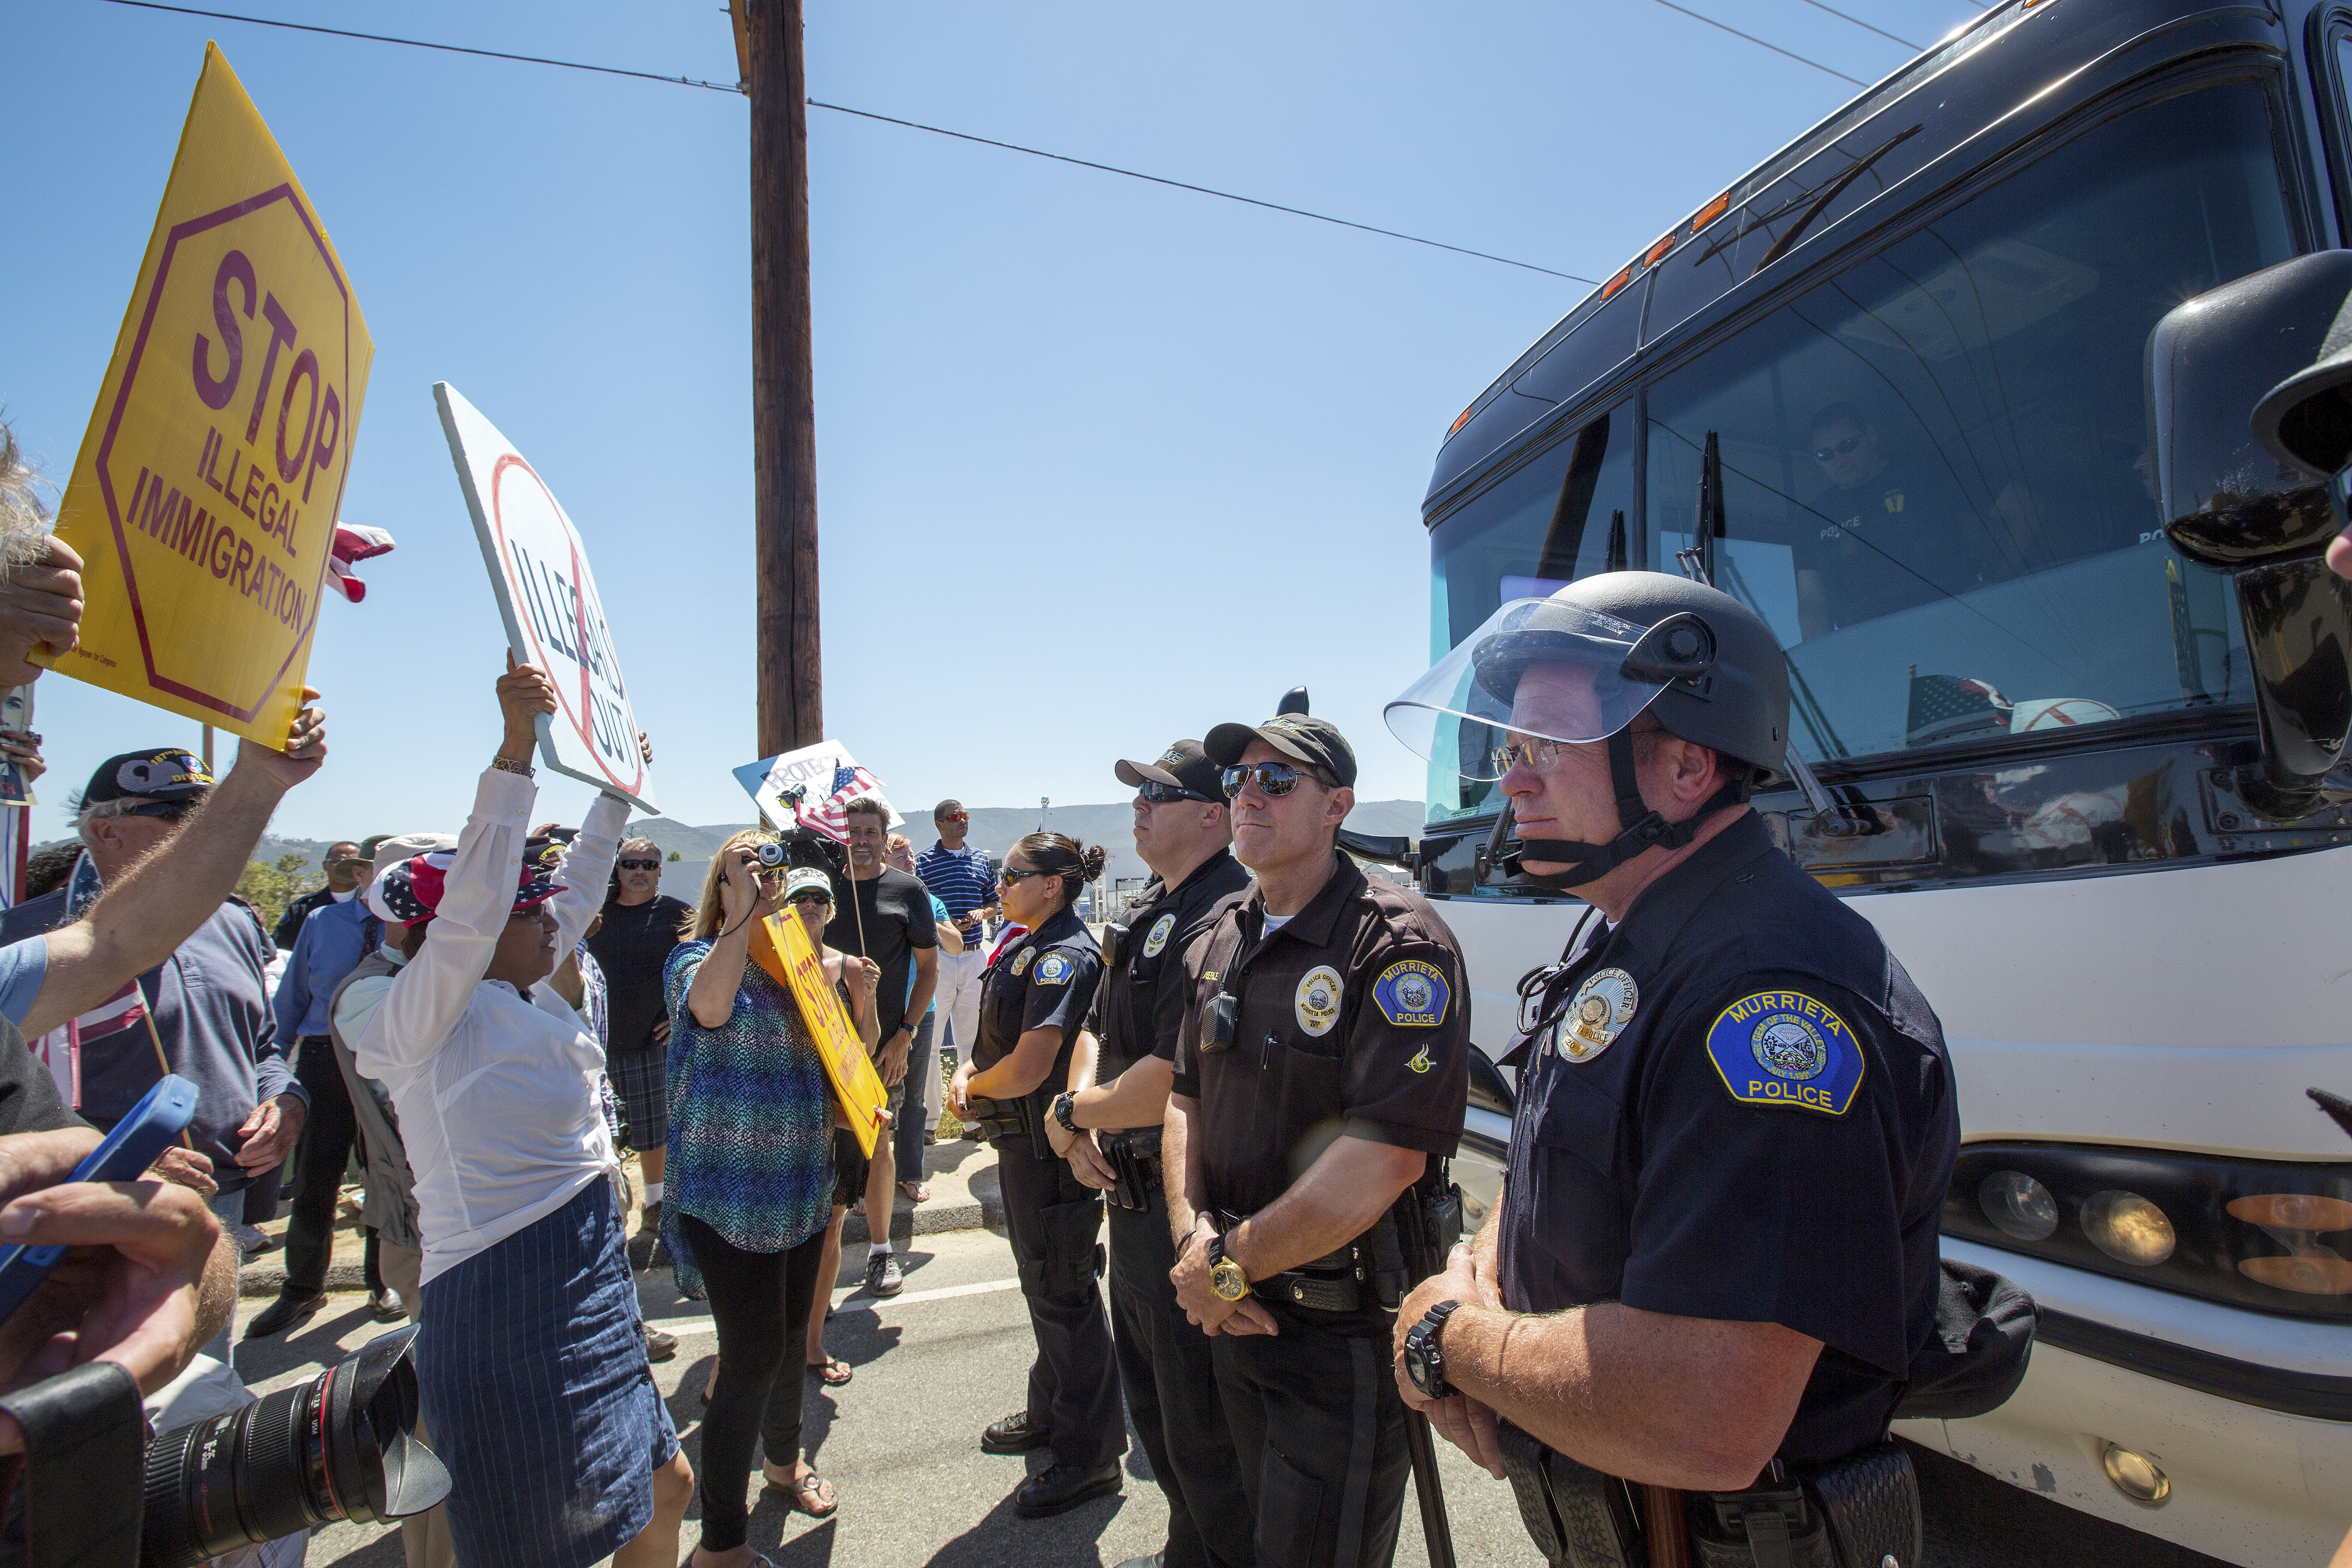 Anti-immigration protesters in Murrieta, calif., block a bus of migrants transferred from overcrowded facilities in Texas. (New York Times photo)